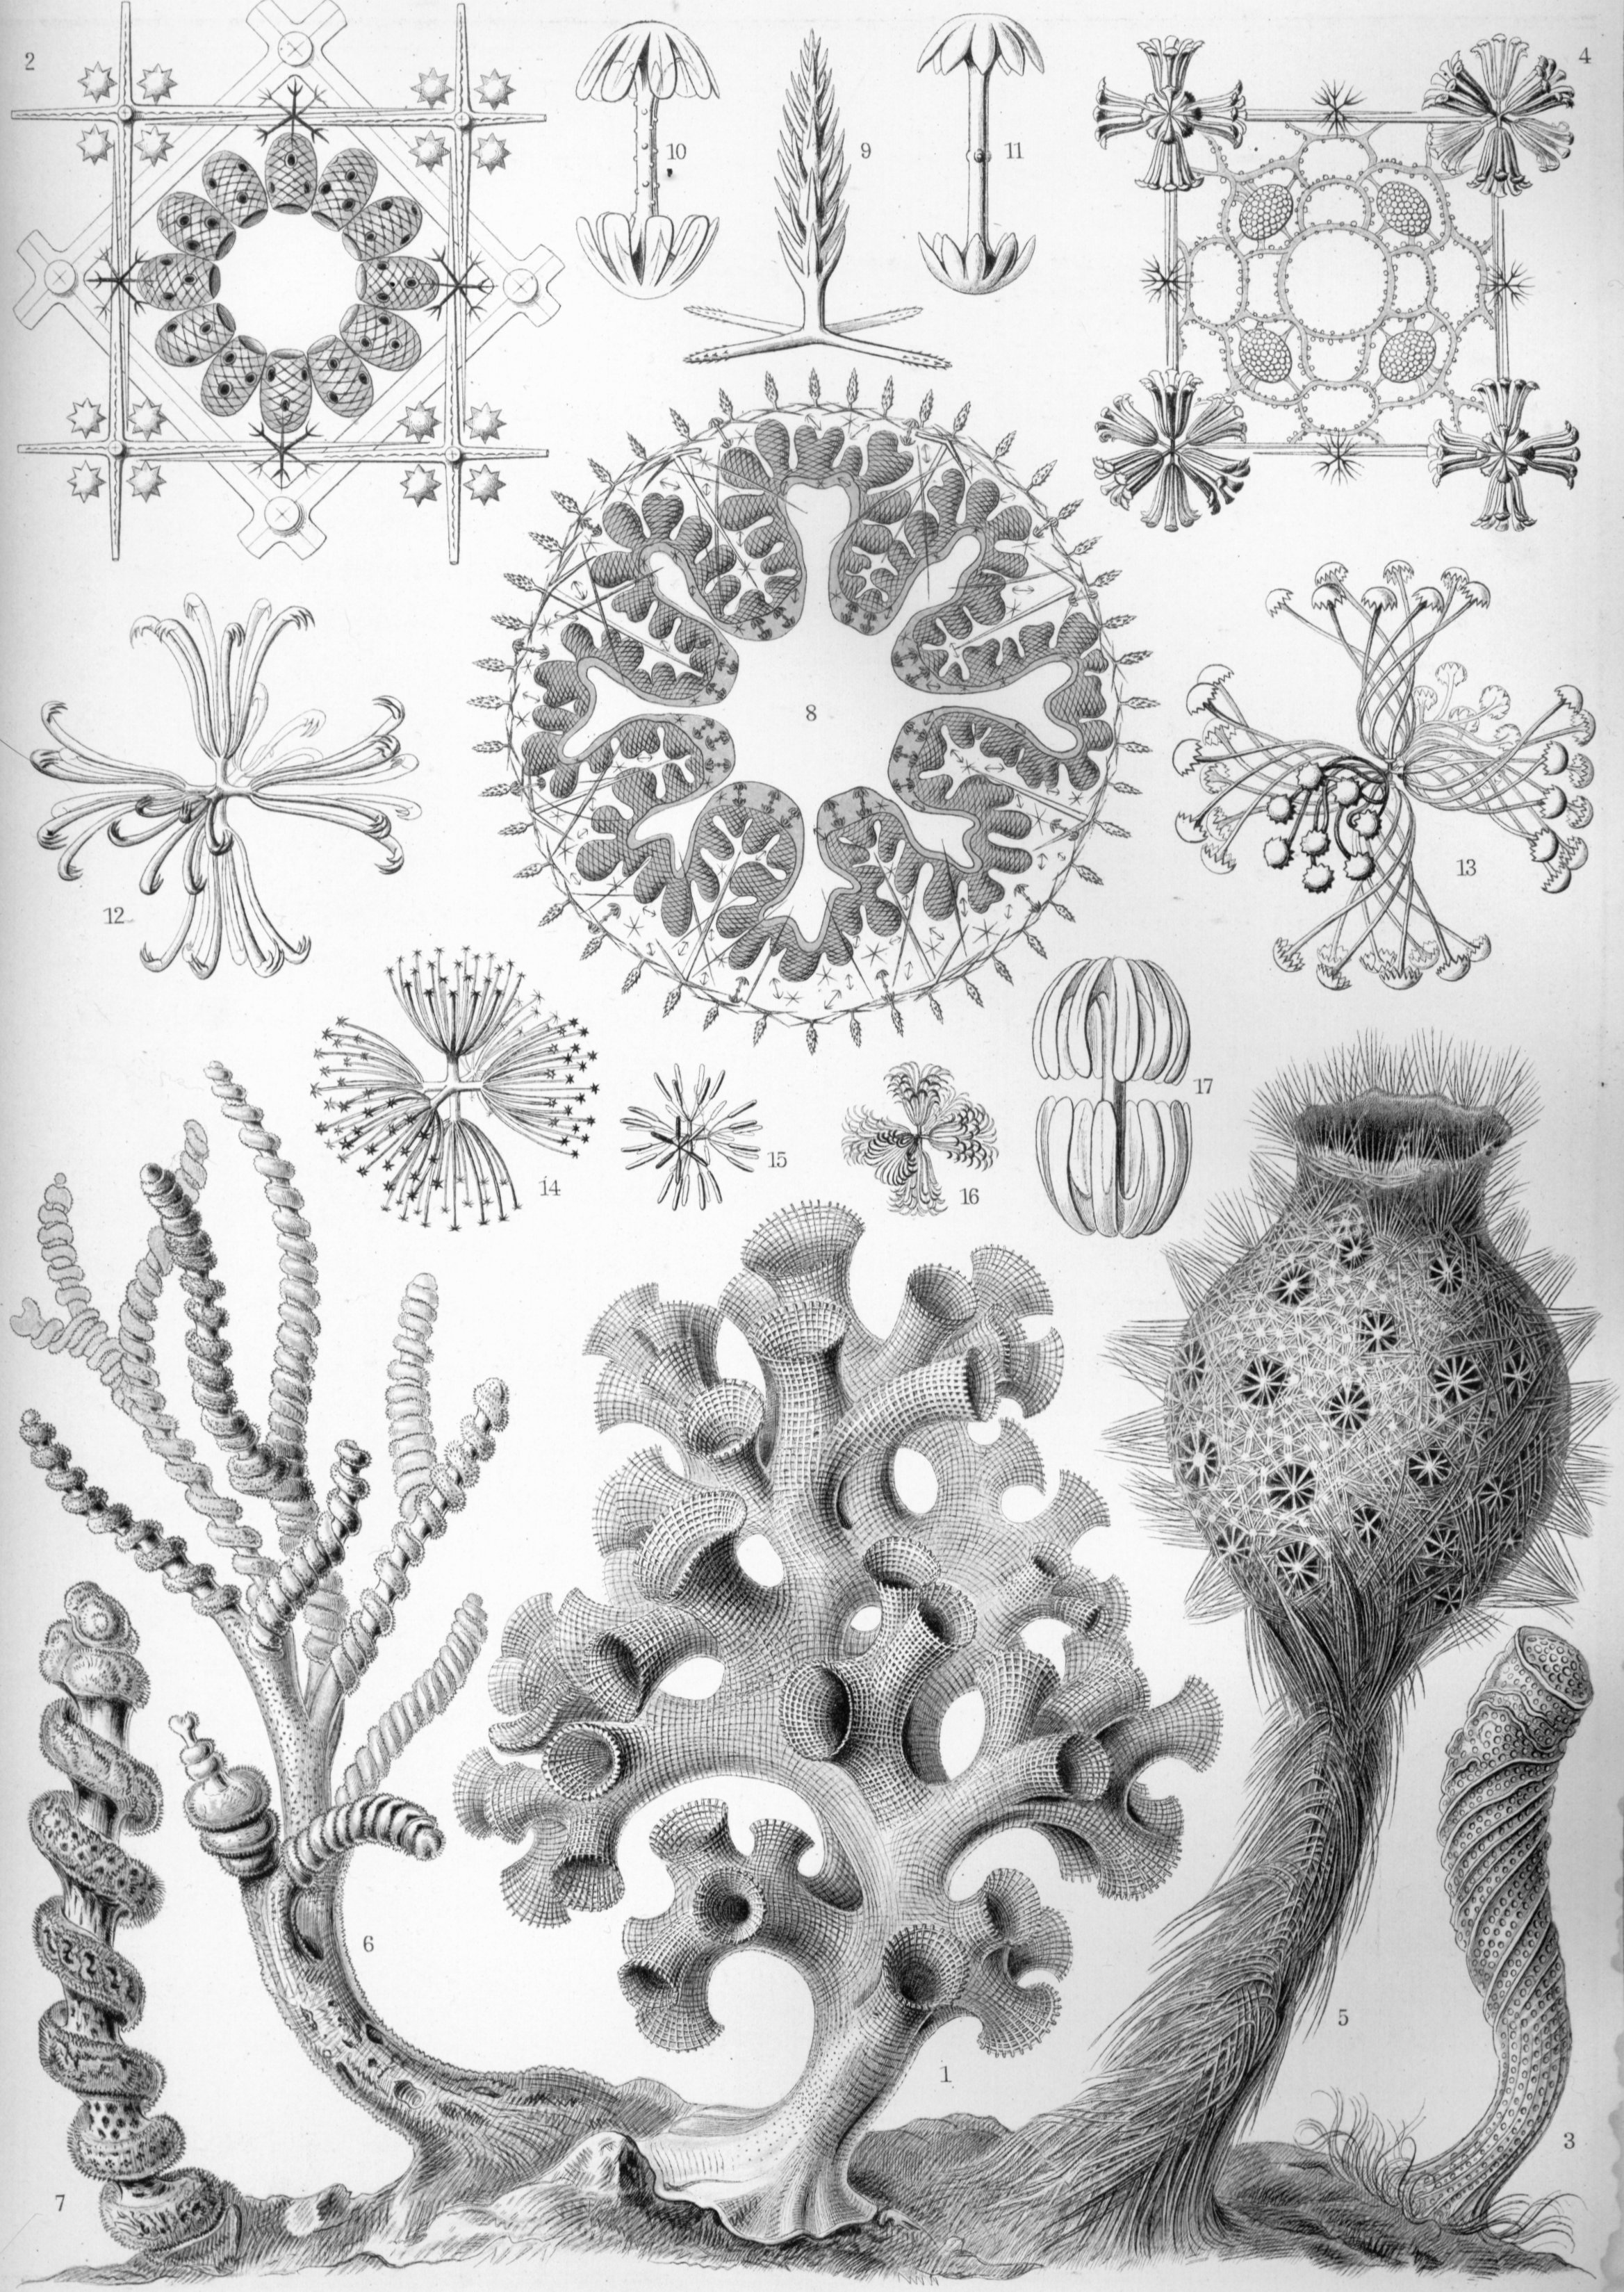 The glass sponges were not lost on Ernest Haeckel when he was doing his excellent drawings back in the day